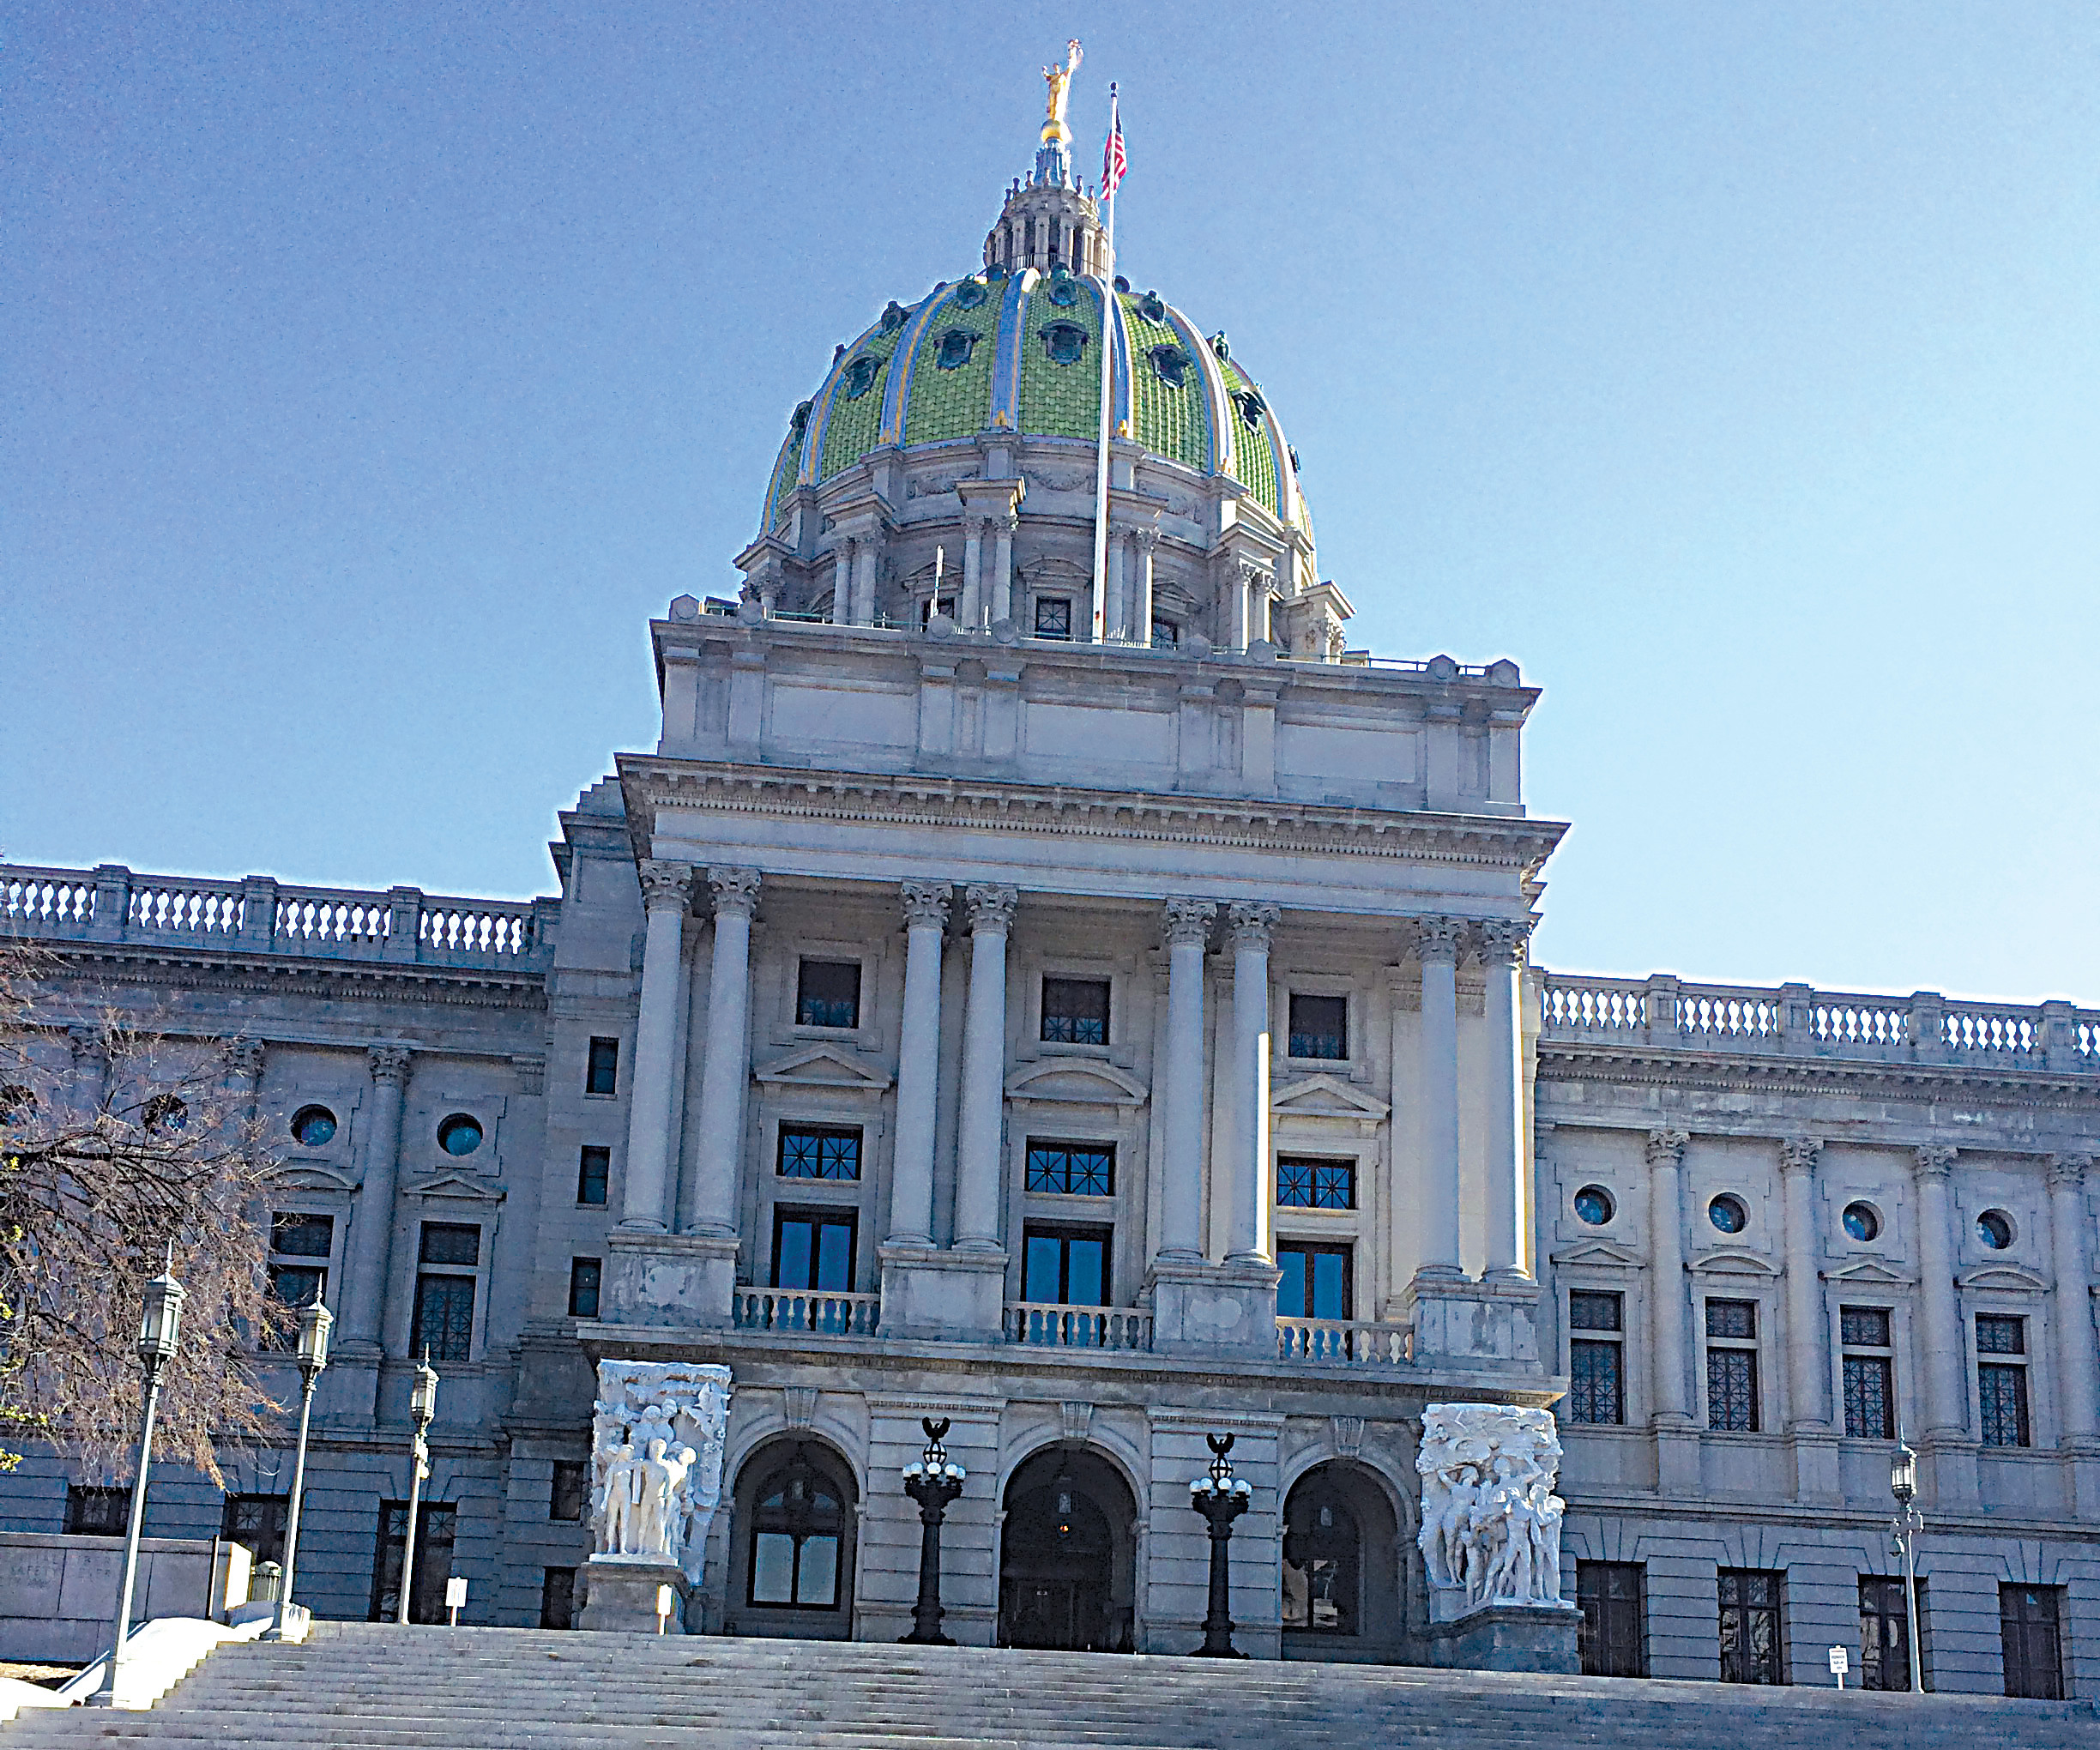 What decisions will legislators make on the budget when they enter the Capitol? It could have a big effect on the lives of Pennsylvanians.